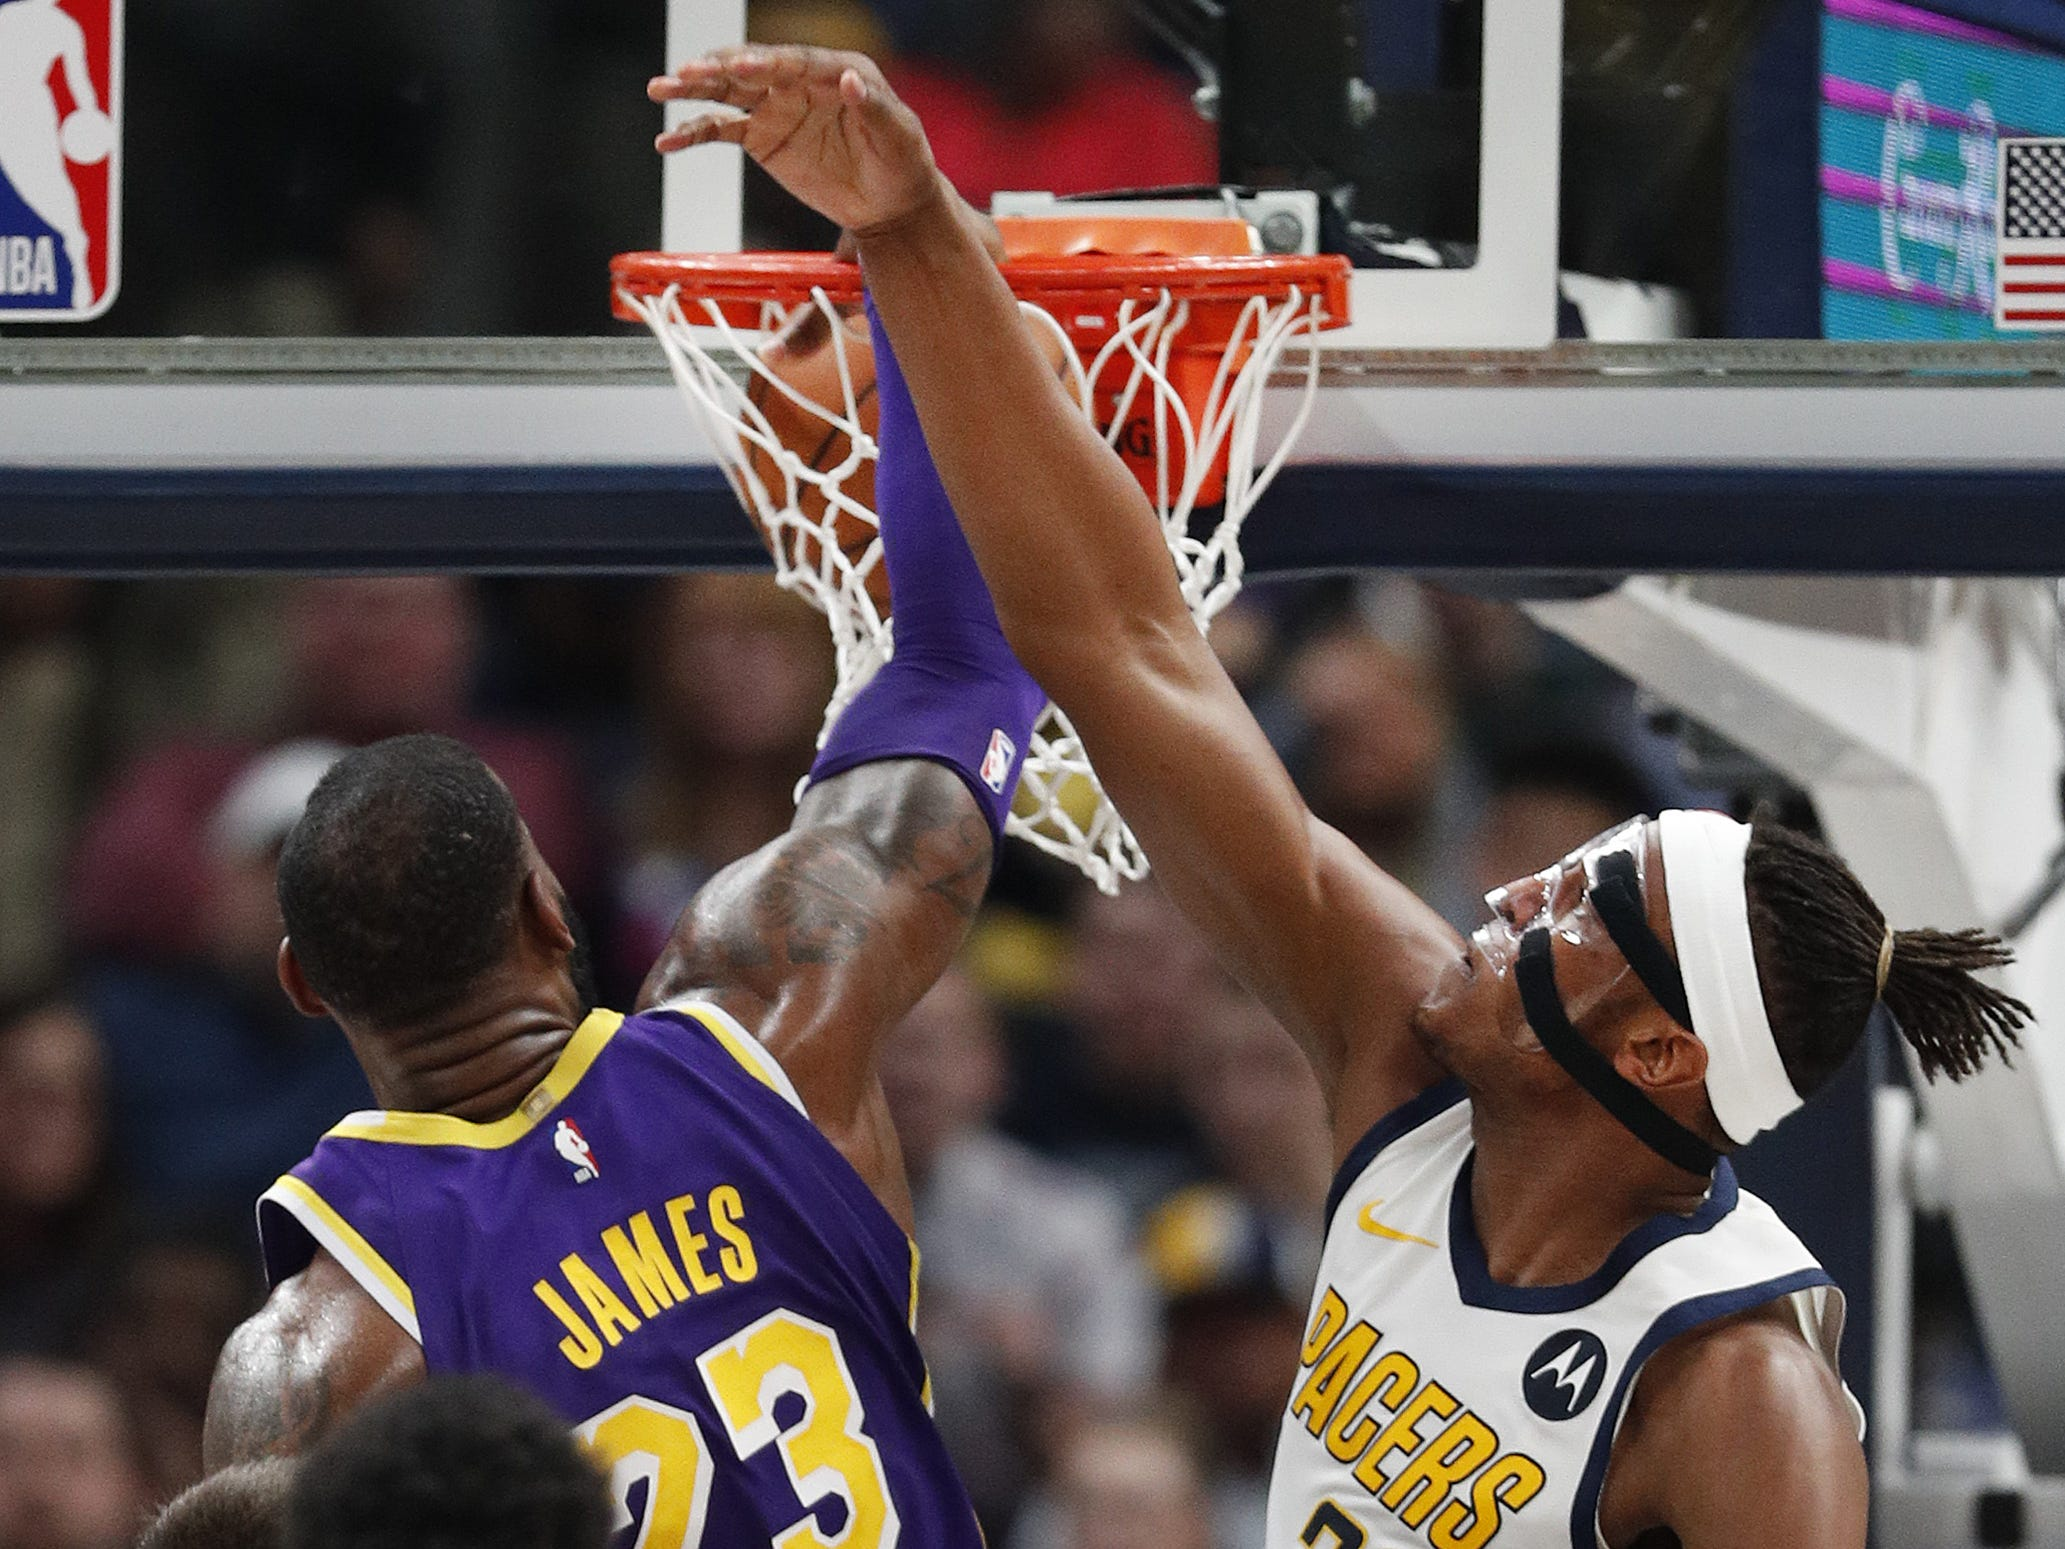 Los Angeles Lakers forward LeBron James (23) dunks on Indiana Pacers center Myles Turner (33) in the first half of their game at Bankers Life Fieldouse on Tuesday, Feb. 5, 2019.